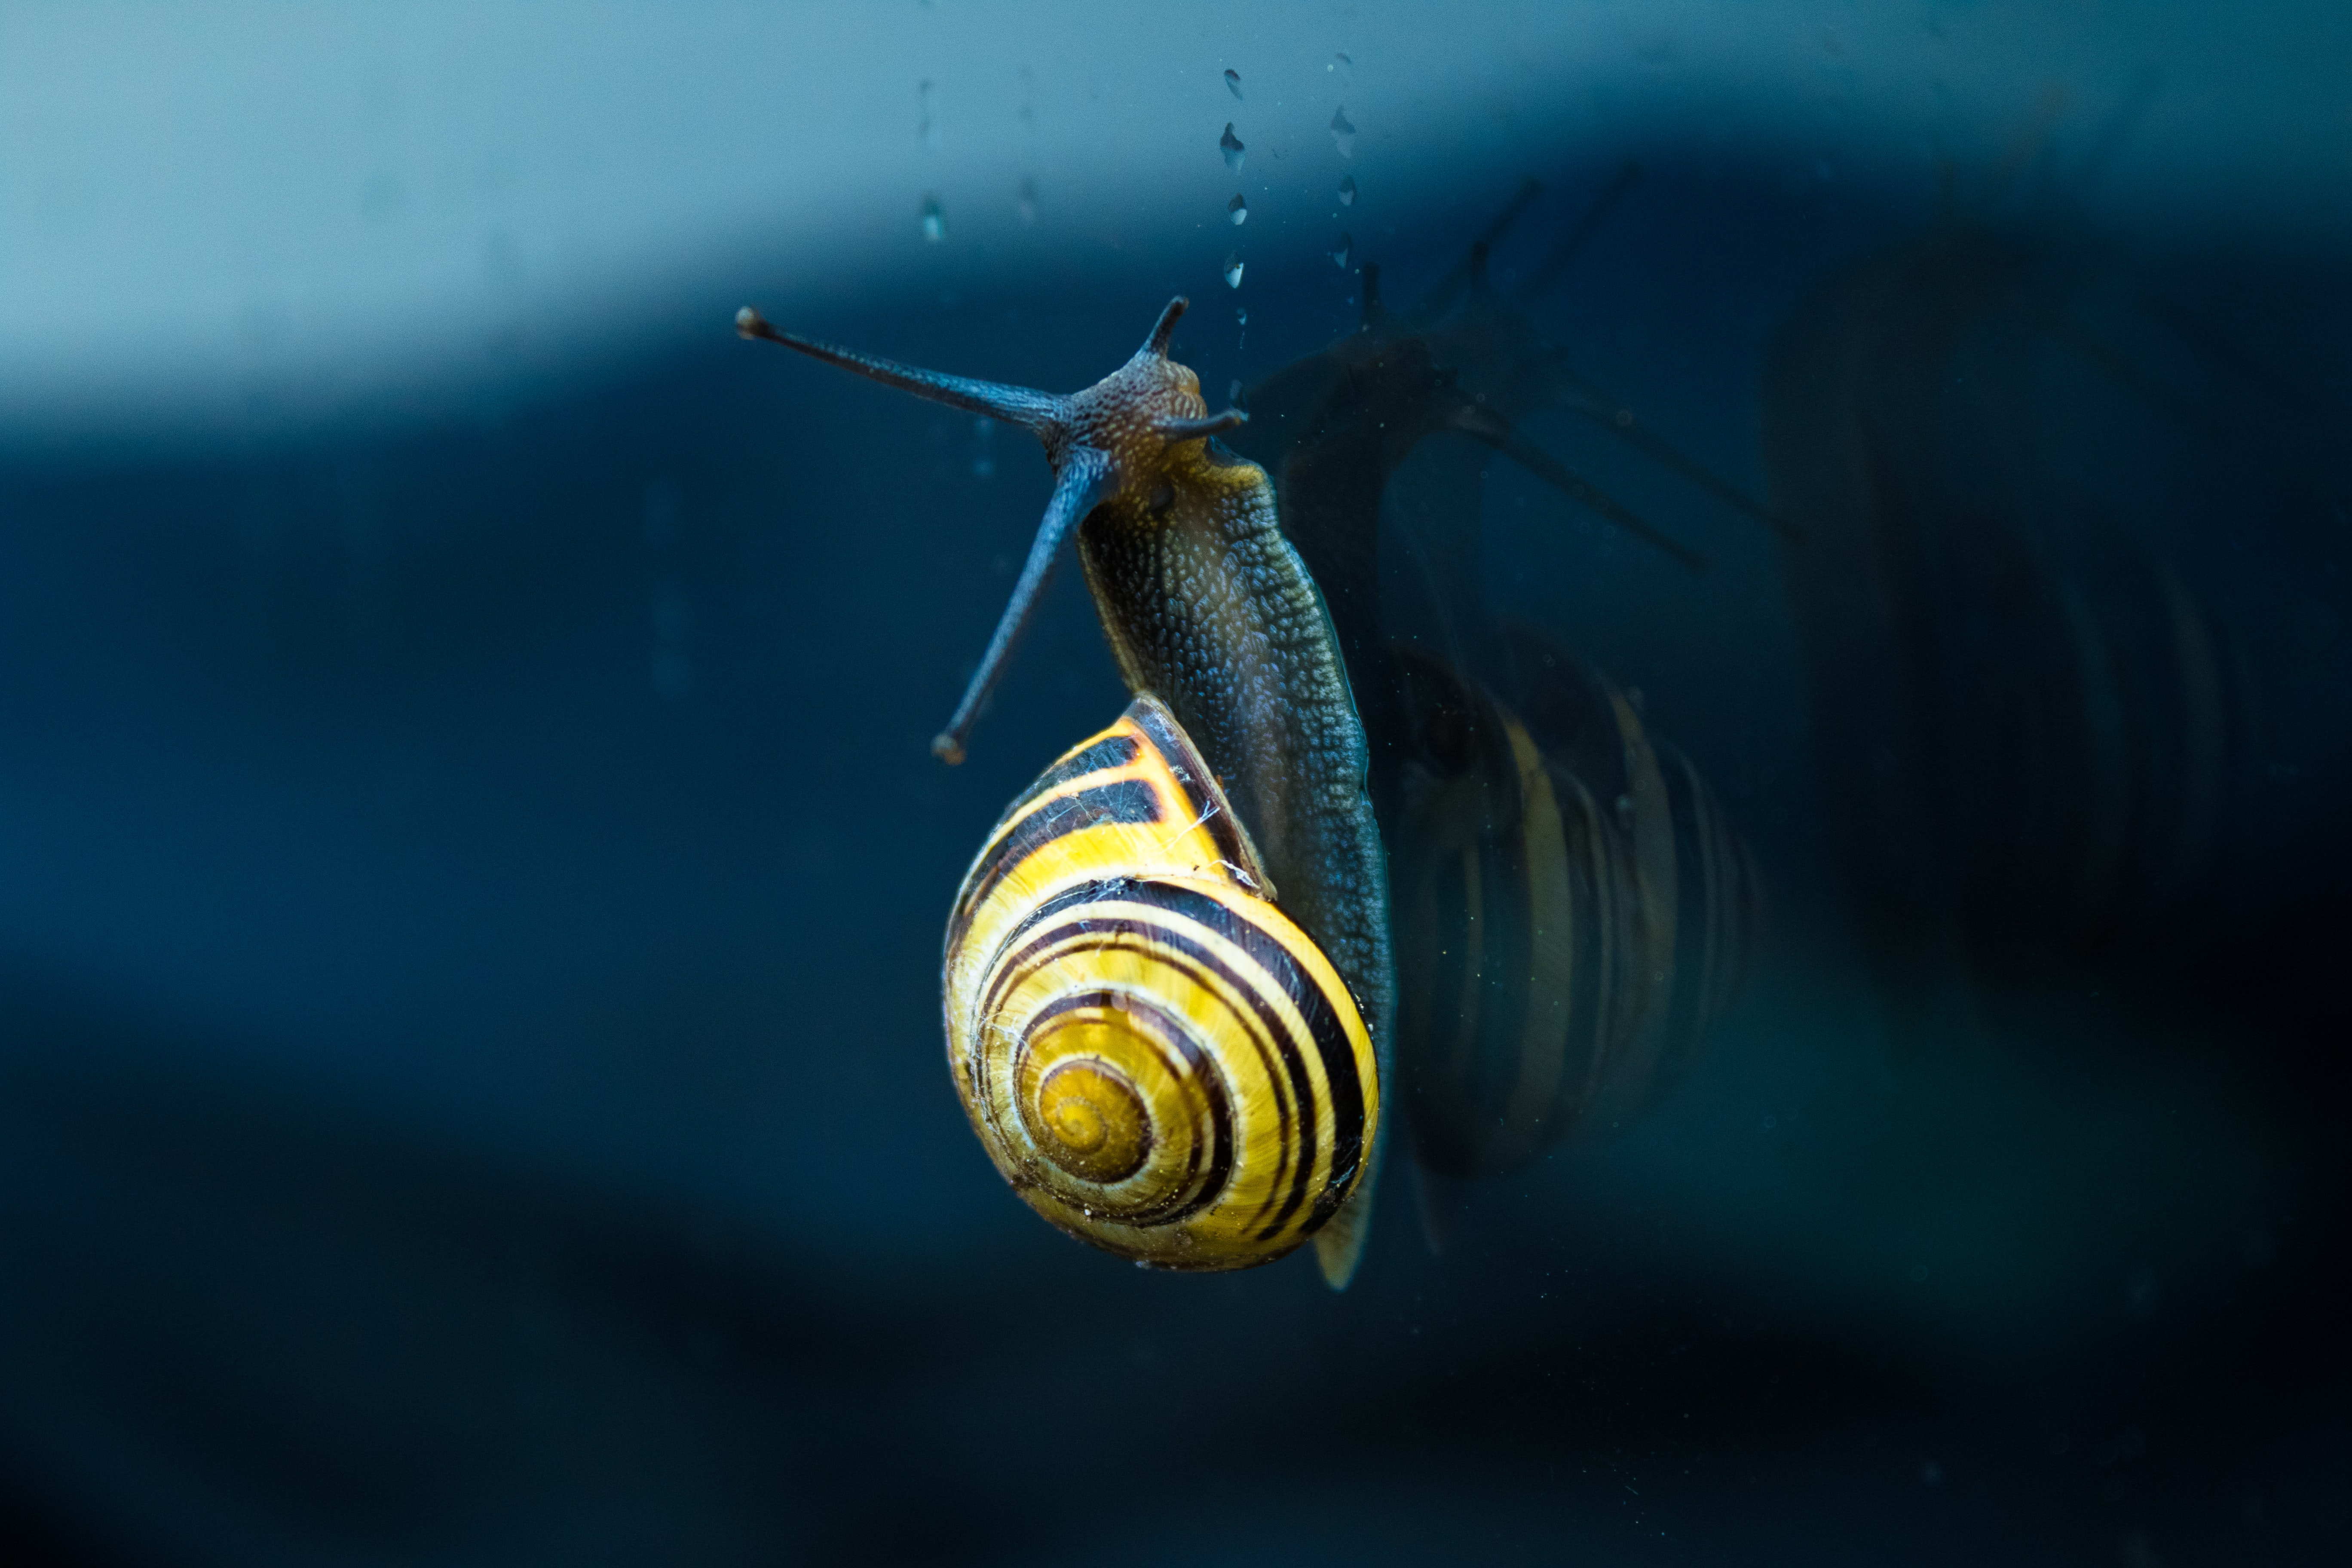 Snail with a yellow striped spiral shell ascends window with water drops